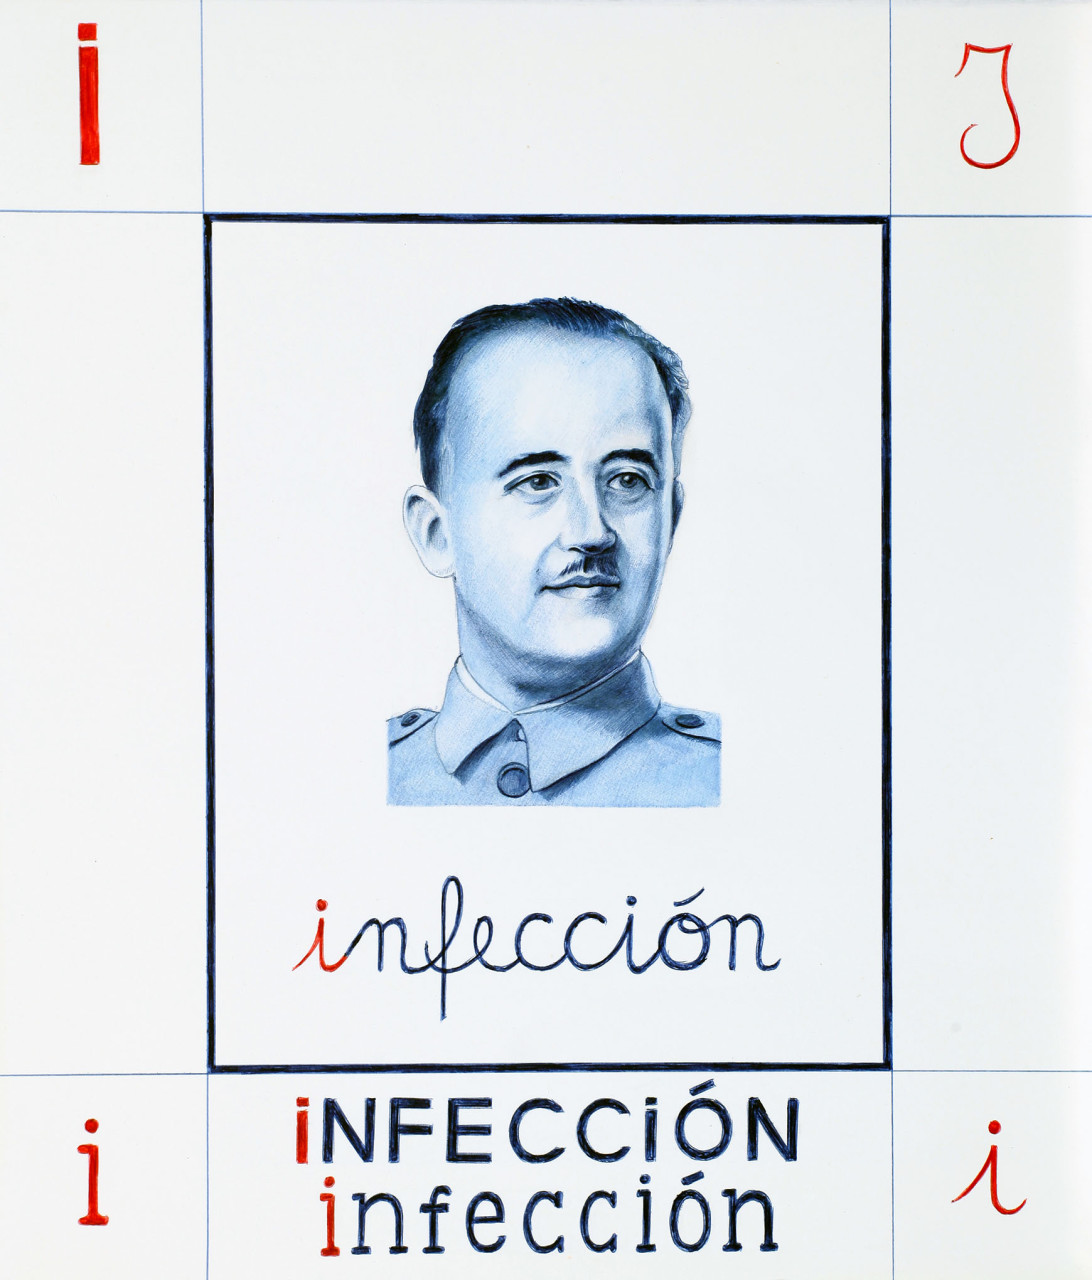 10I-infeccion_bassa